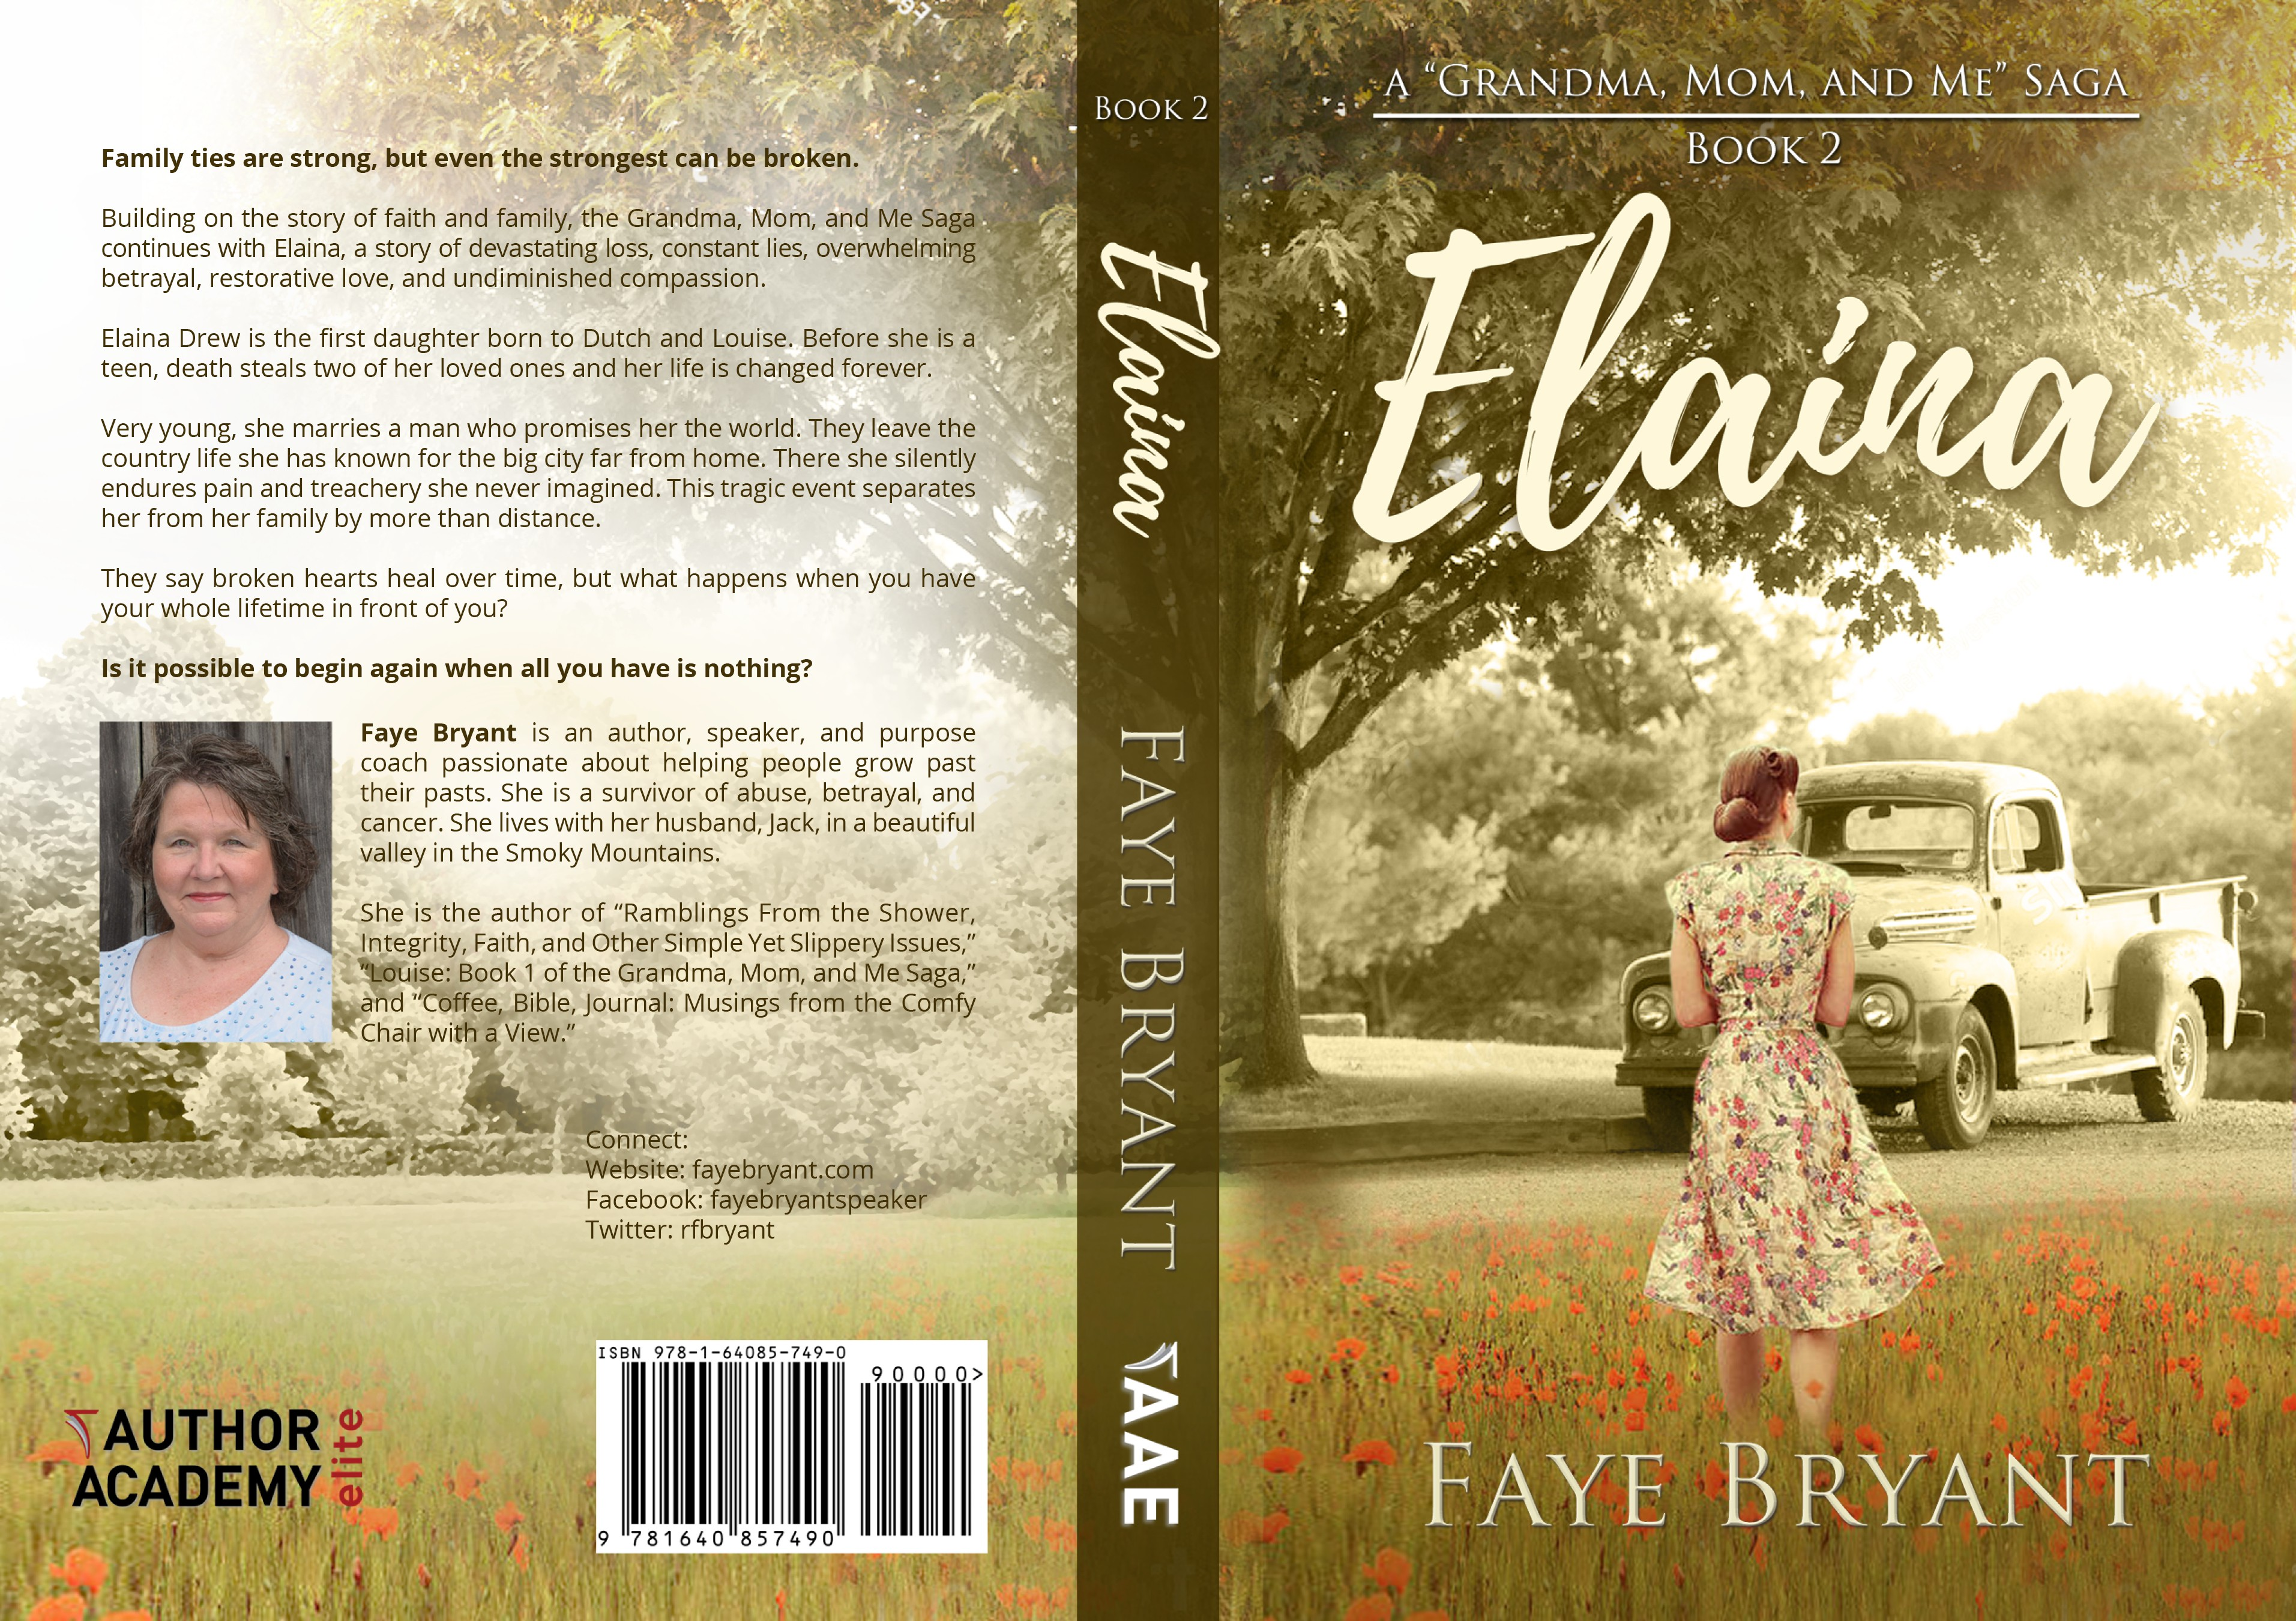 Make my novel come alive with a stunning book cover, potential for follow-up paid projects